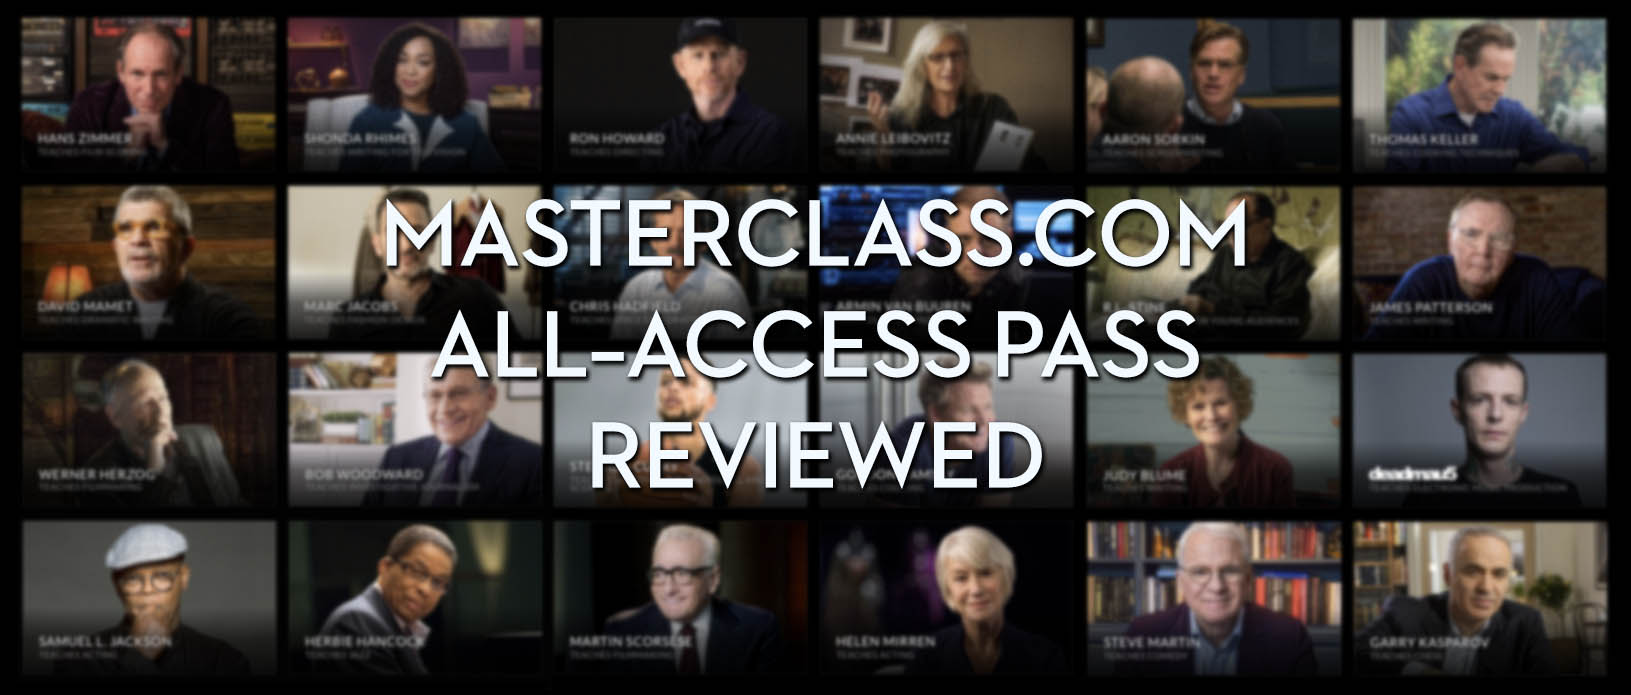 Masterclass all-access pass review